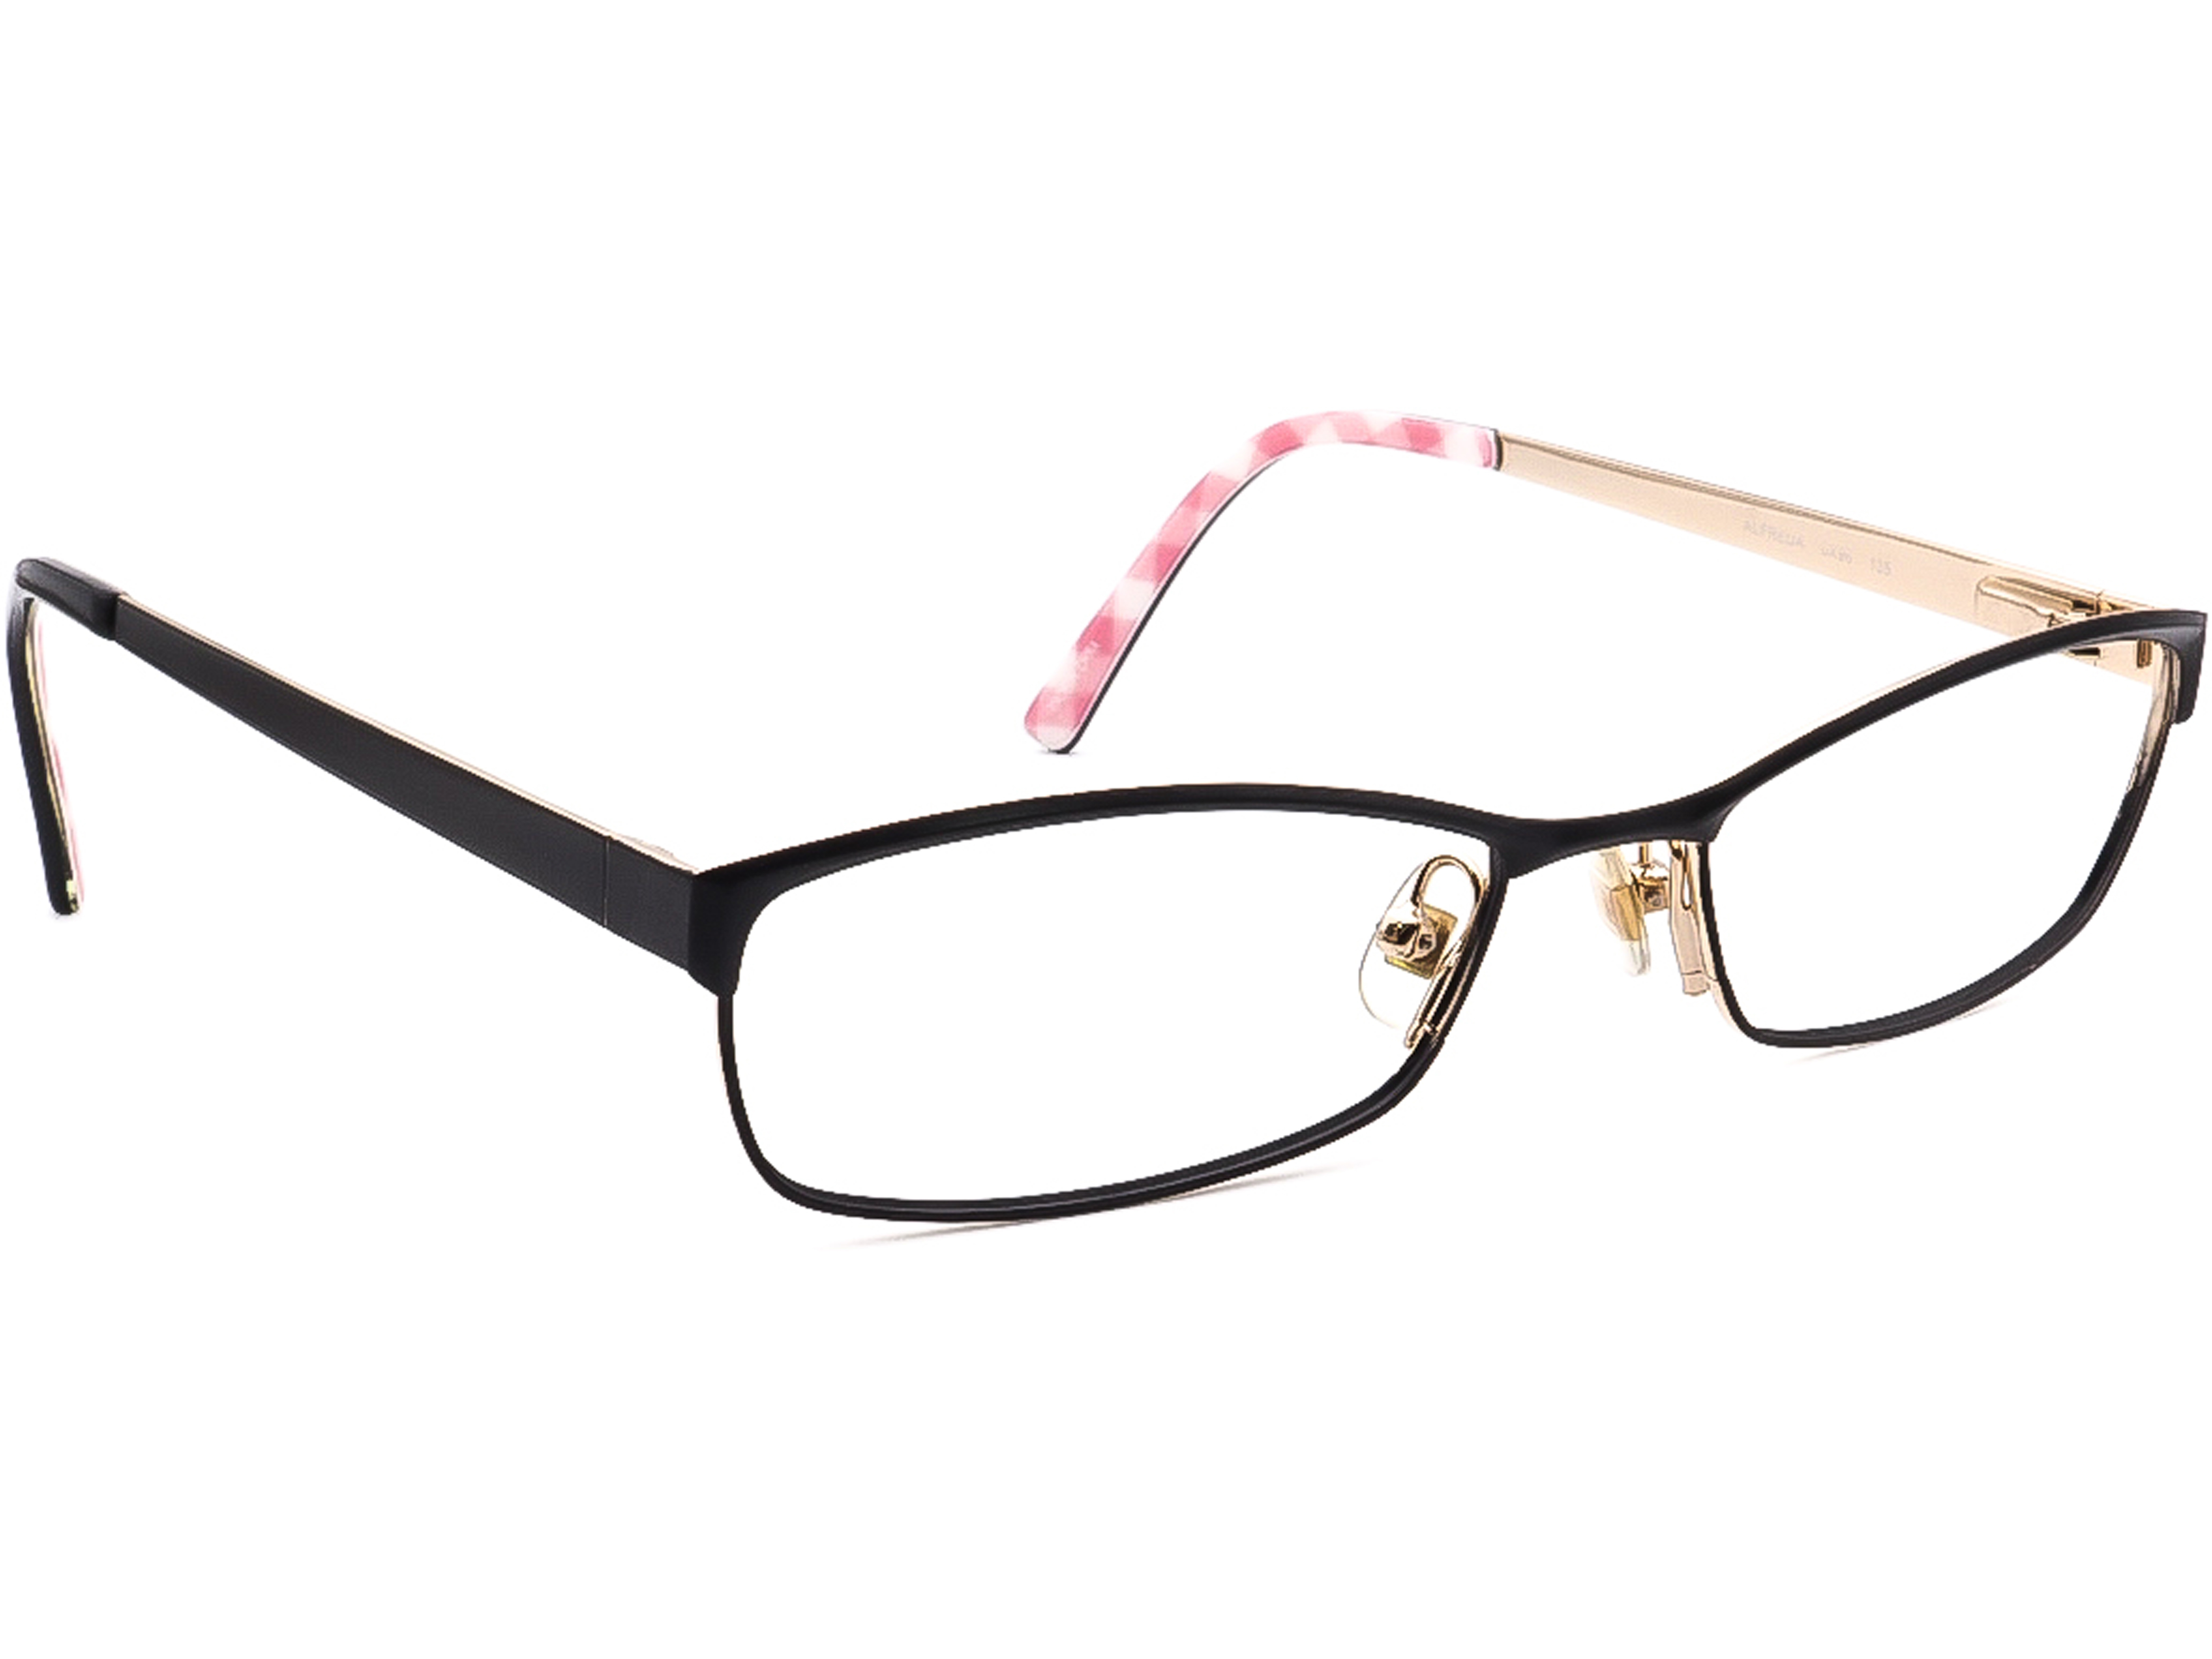 Kate Spade Eyeglasses Alfreda 0X96 Black/Gold Other Shape Metal Frame 51[]18 135